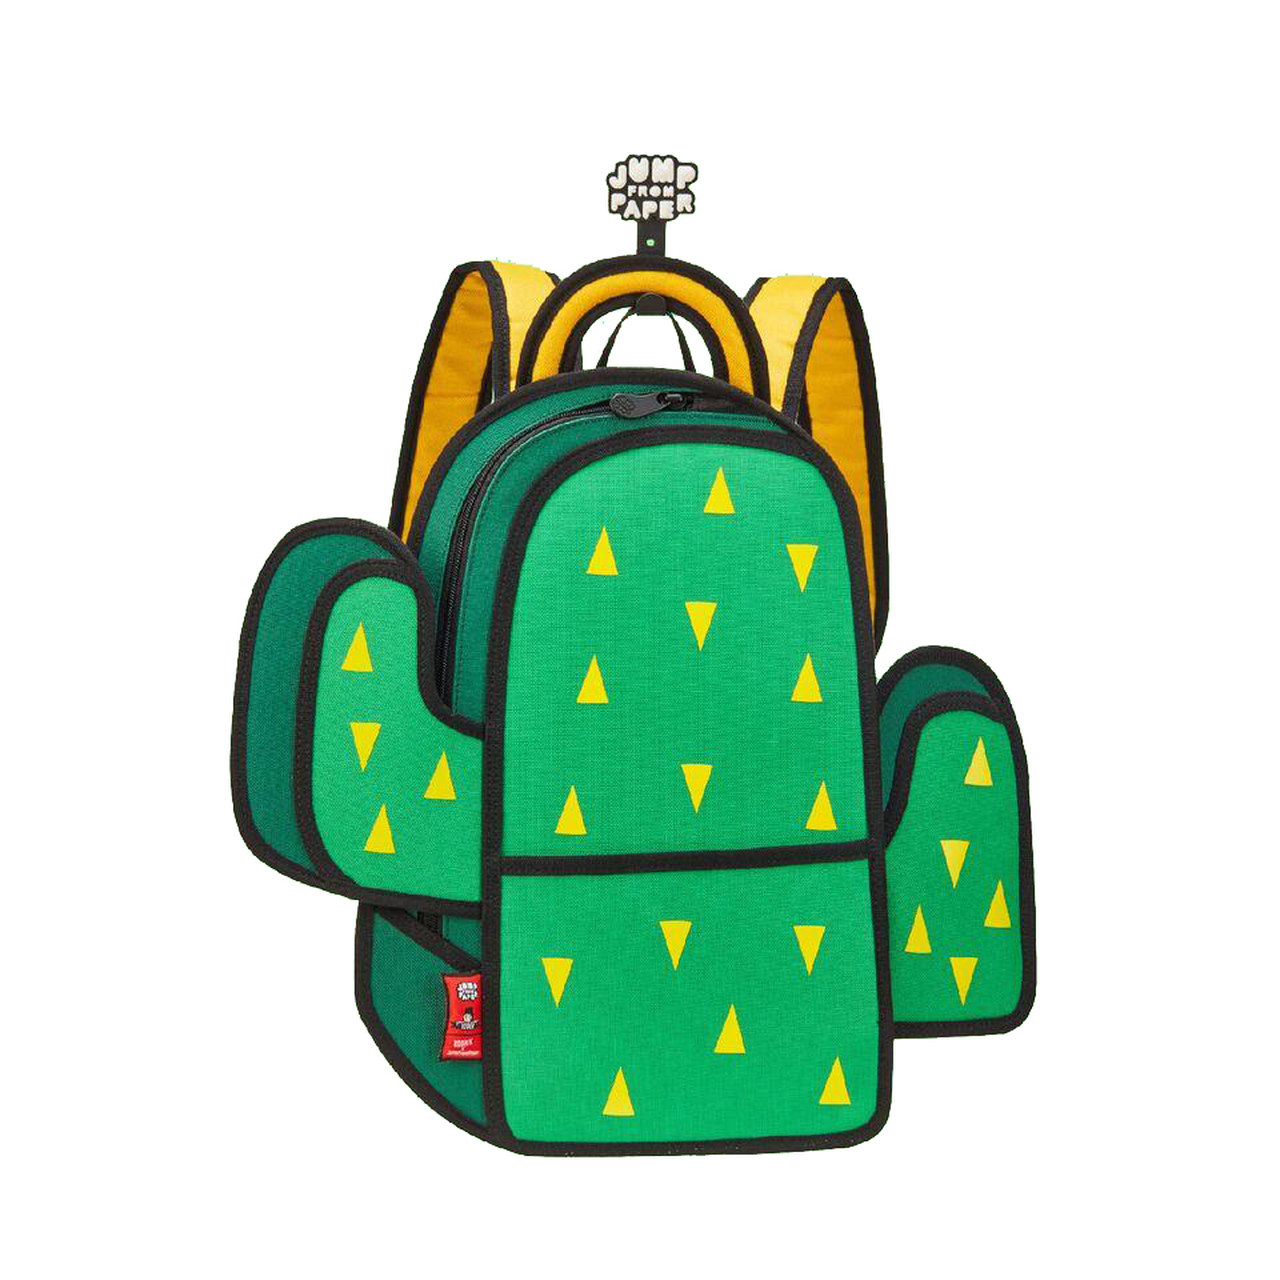 Papers flying out of a backpack clipart image black and white stock Jump from Paper Pop Art Backpack - Cactus image black and white stock